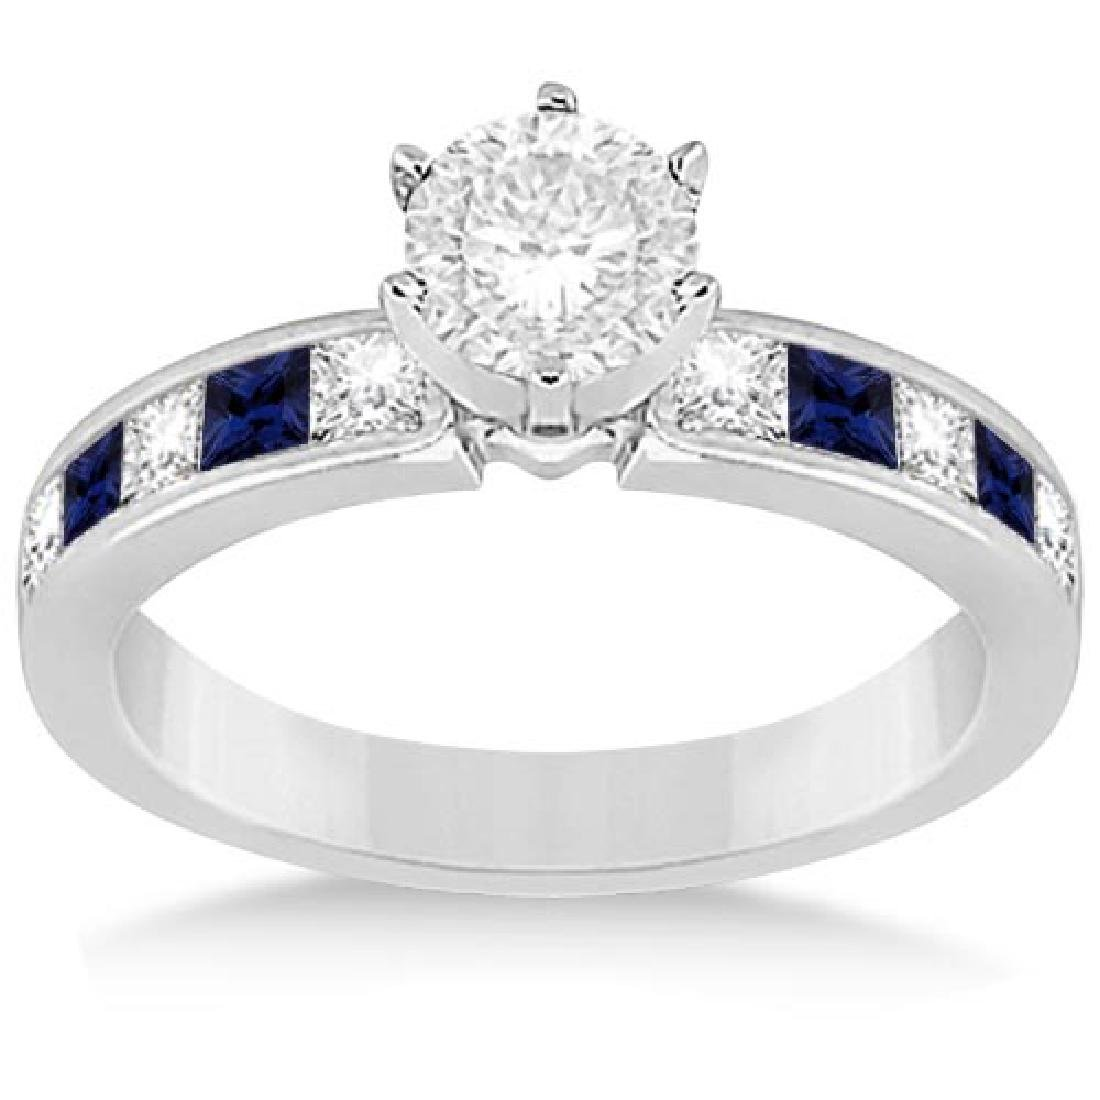 Channel Blue Sapphire and Diamond Engagement Ring 14k W